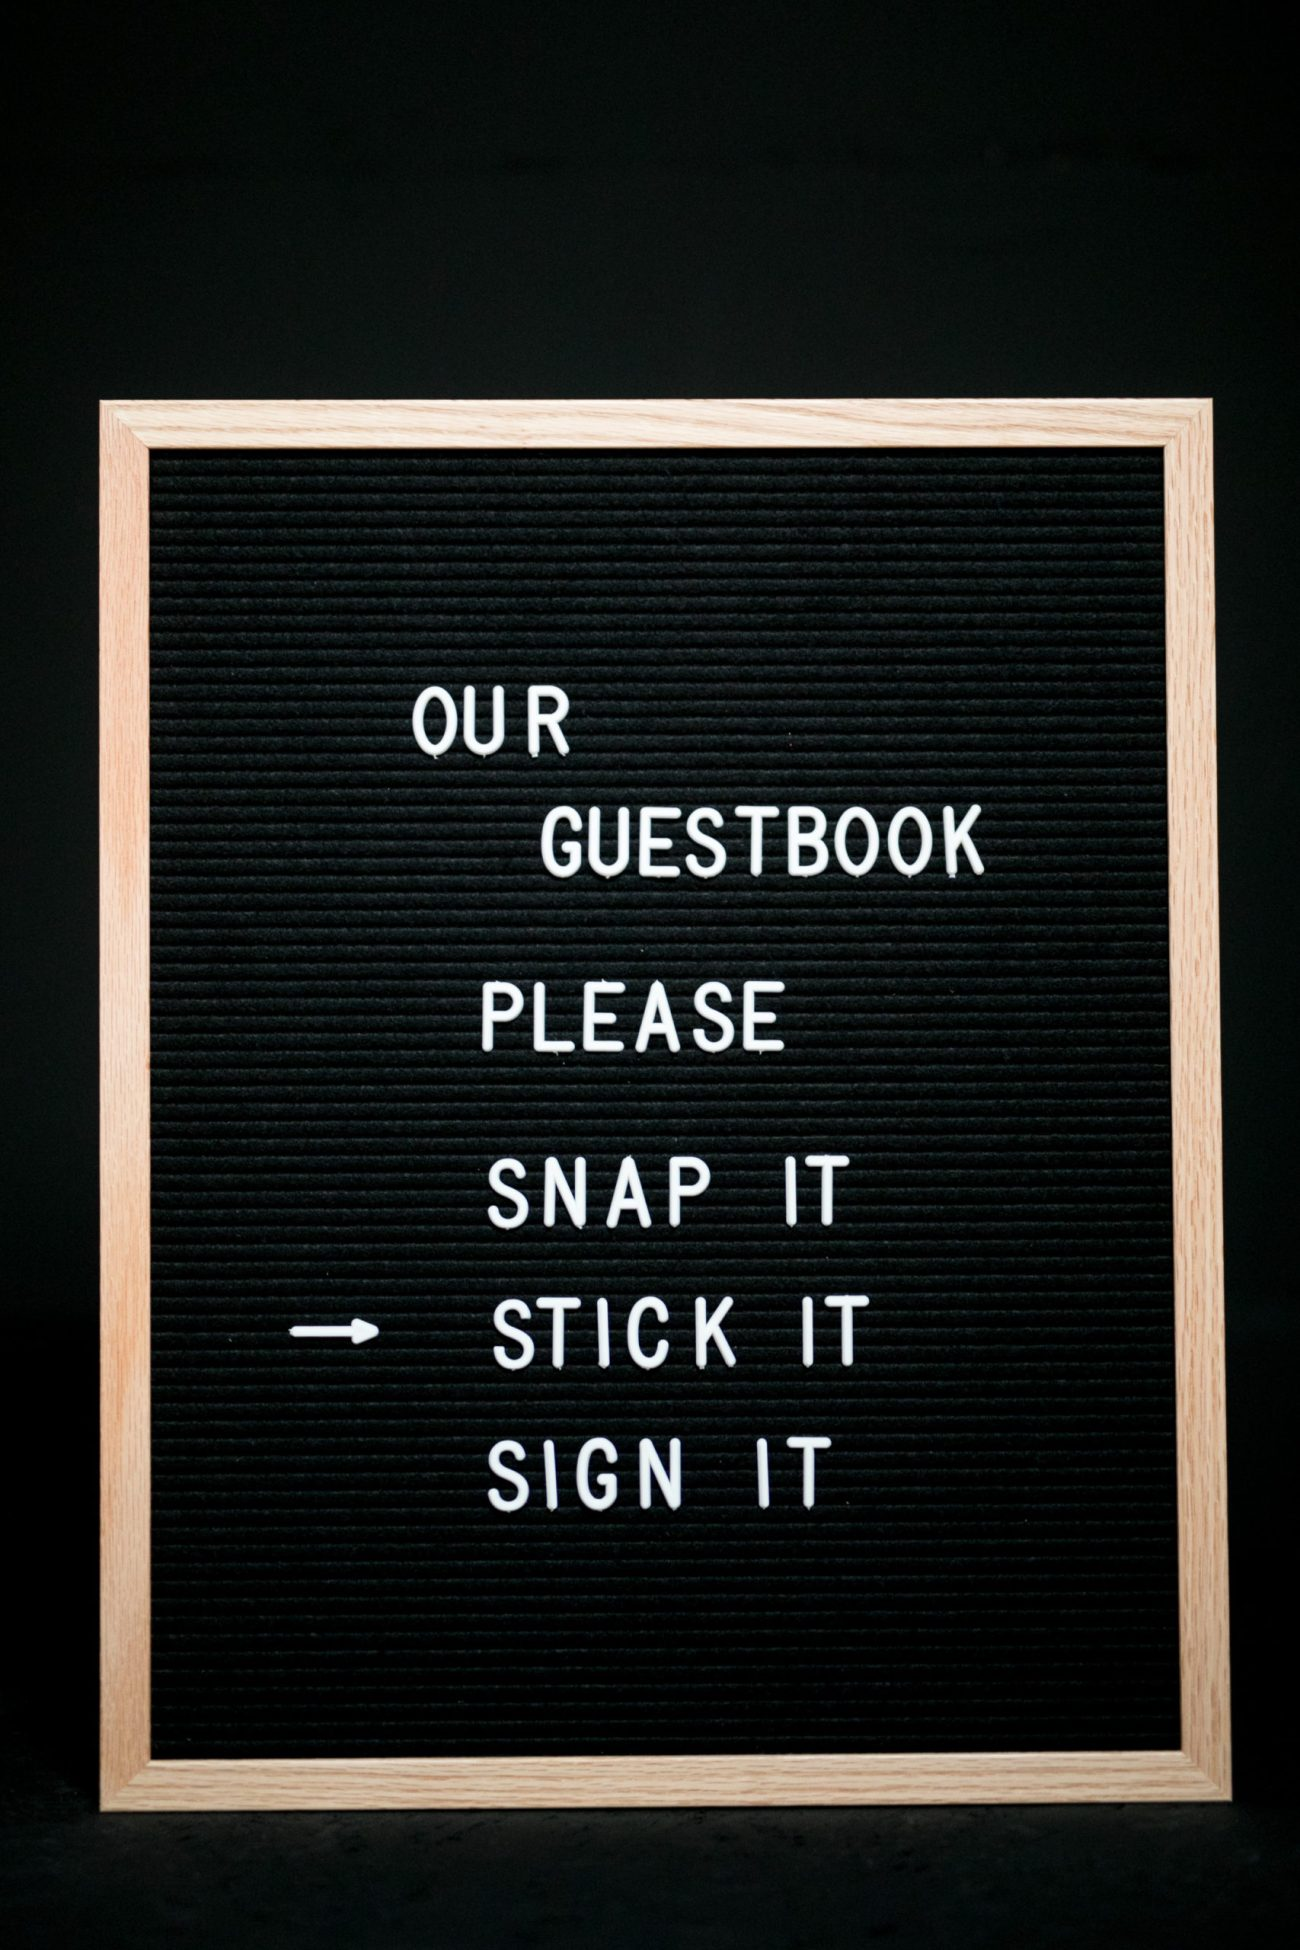 Large felt letter board by Letterfolk part of a polaroid guest book bundle